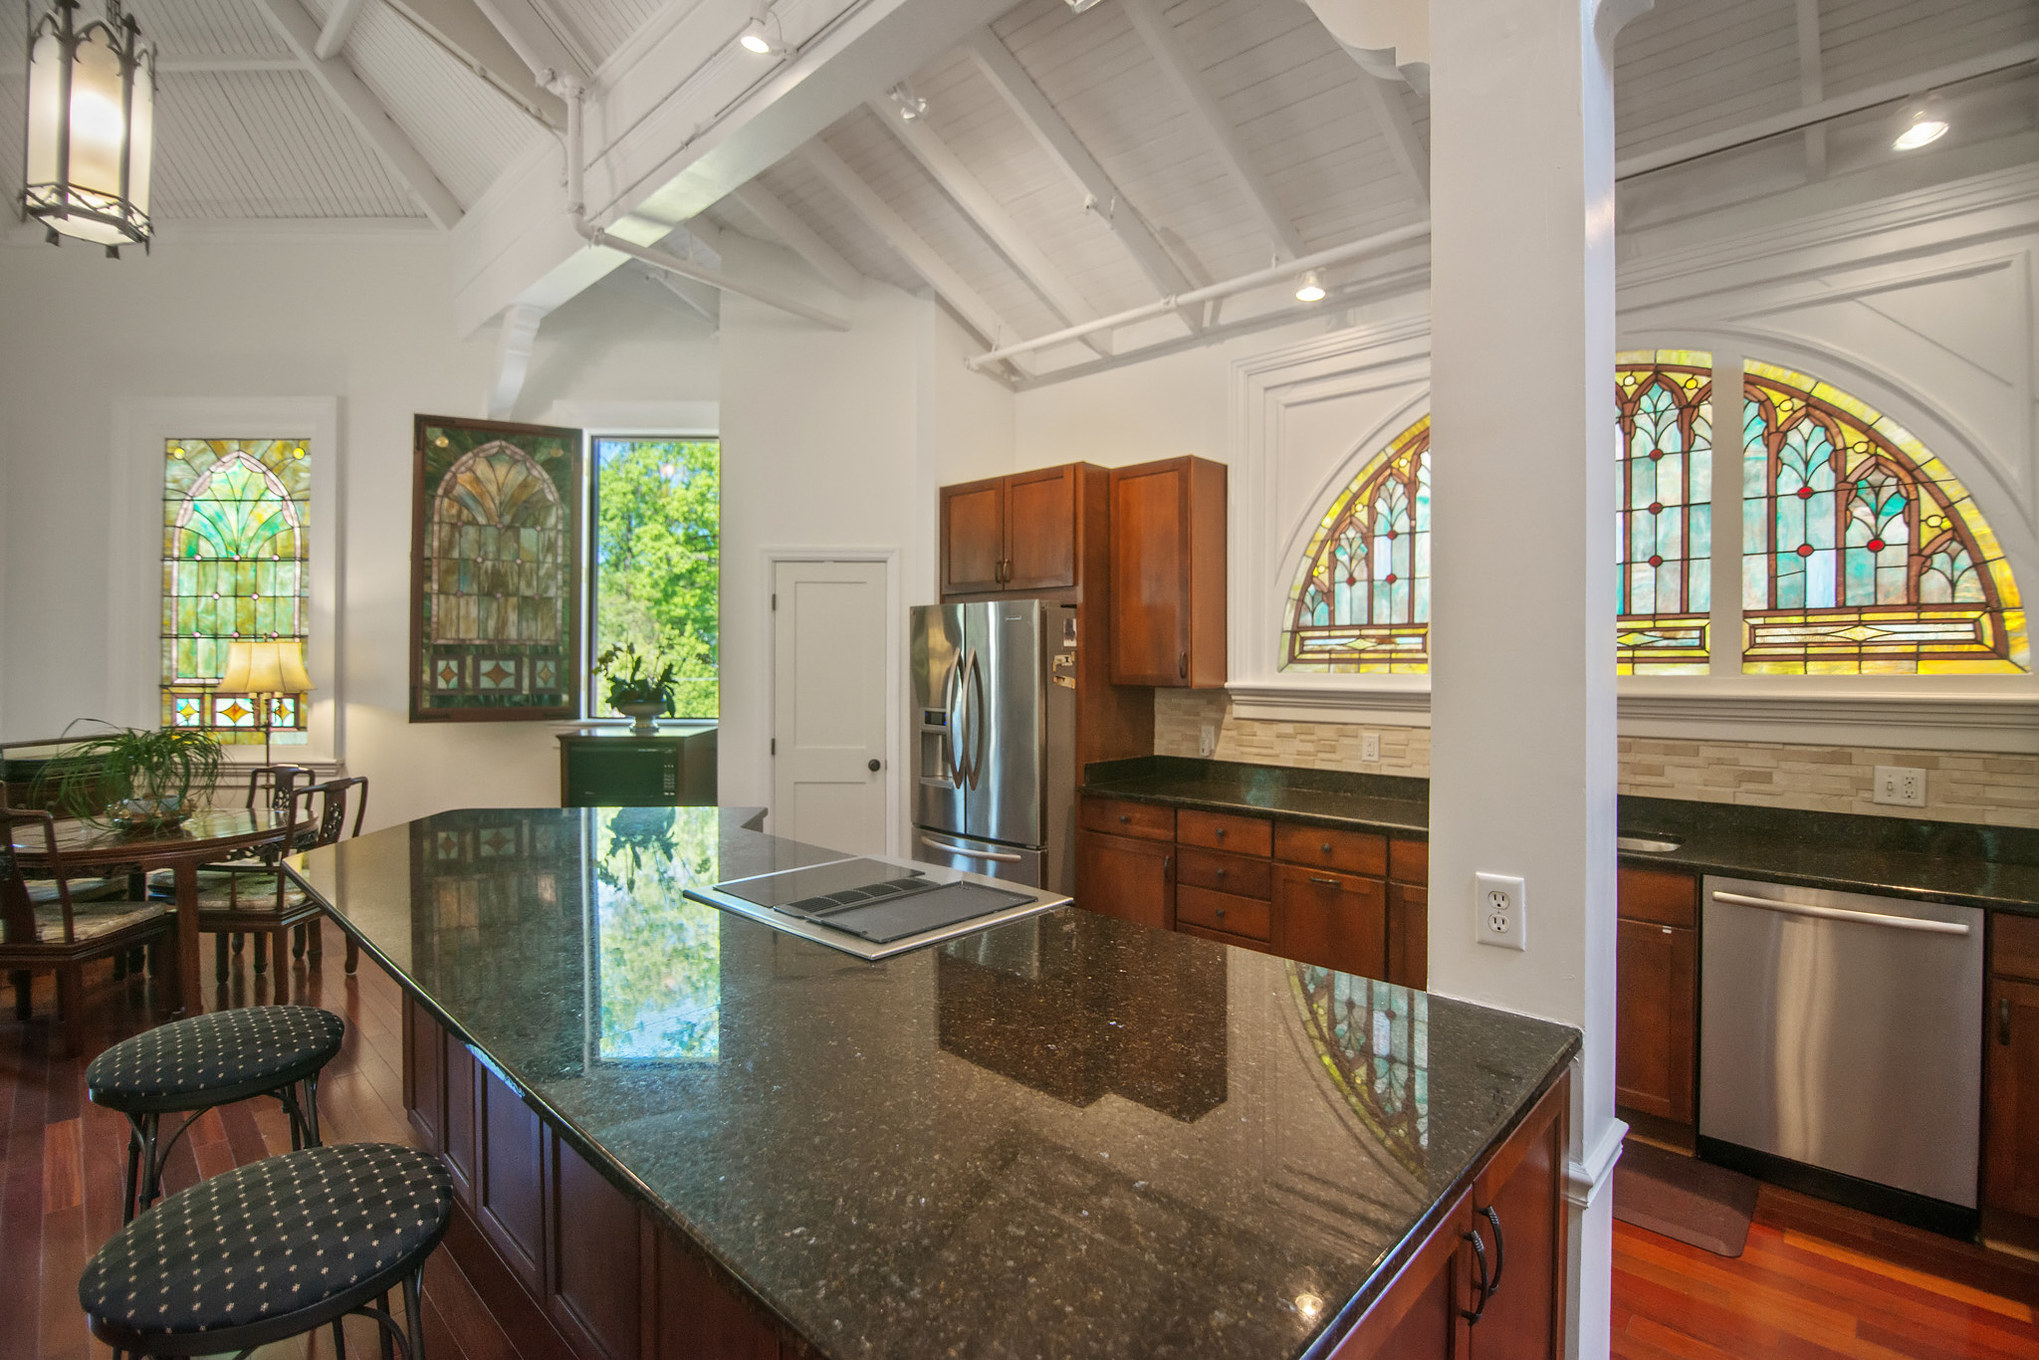 "From an elite girls' school to a medical facility, a chapel, a concert hall and now a two-bedroom/two-bathroom 3,500-square-foot house on the market for more than $1 million, this home has had quite the history! According to the current owners, this Silver Spring home ""is the crown jewel of the restored National Park Seminary,"" which operated as a private girls' school from 1894 to 1942 for the likes of girls with last names like Hershey, Chrysler, Heinz, Kraft and Maytag. When Walter Reed Army Hospital acquired the property in 1942, it became a medical facility for injured soldiers returning from World War II and the Korean War. Eventually the seminary was listed on the National Register of Historic Places and used as a chapel until the late 1980s when it fell into disrepair until the Alexander Company purchased the land in 2003 and decided to turn many of the buildings into luxury homes. Now the is stucco and wood exteriors combined with the 33 extant stained glass windows, abundance of natural light, 33' ceilings and rounded walls give the place a very ""Guggenheimish"" aesthetic. (Image: Courtesy{ }Houwzer Realty)"